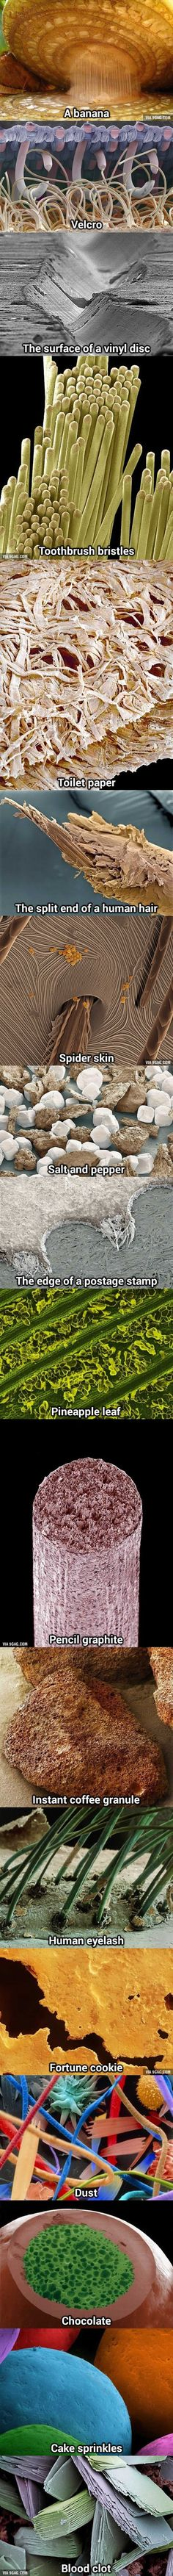 18 Average Things Under A Microscope.: